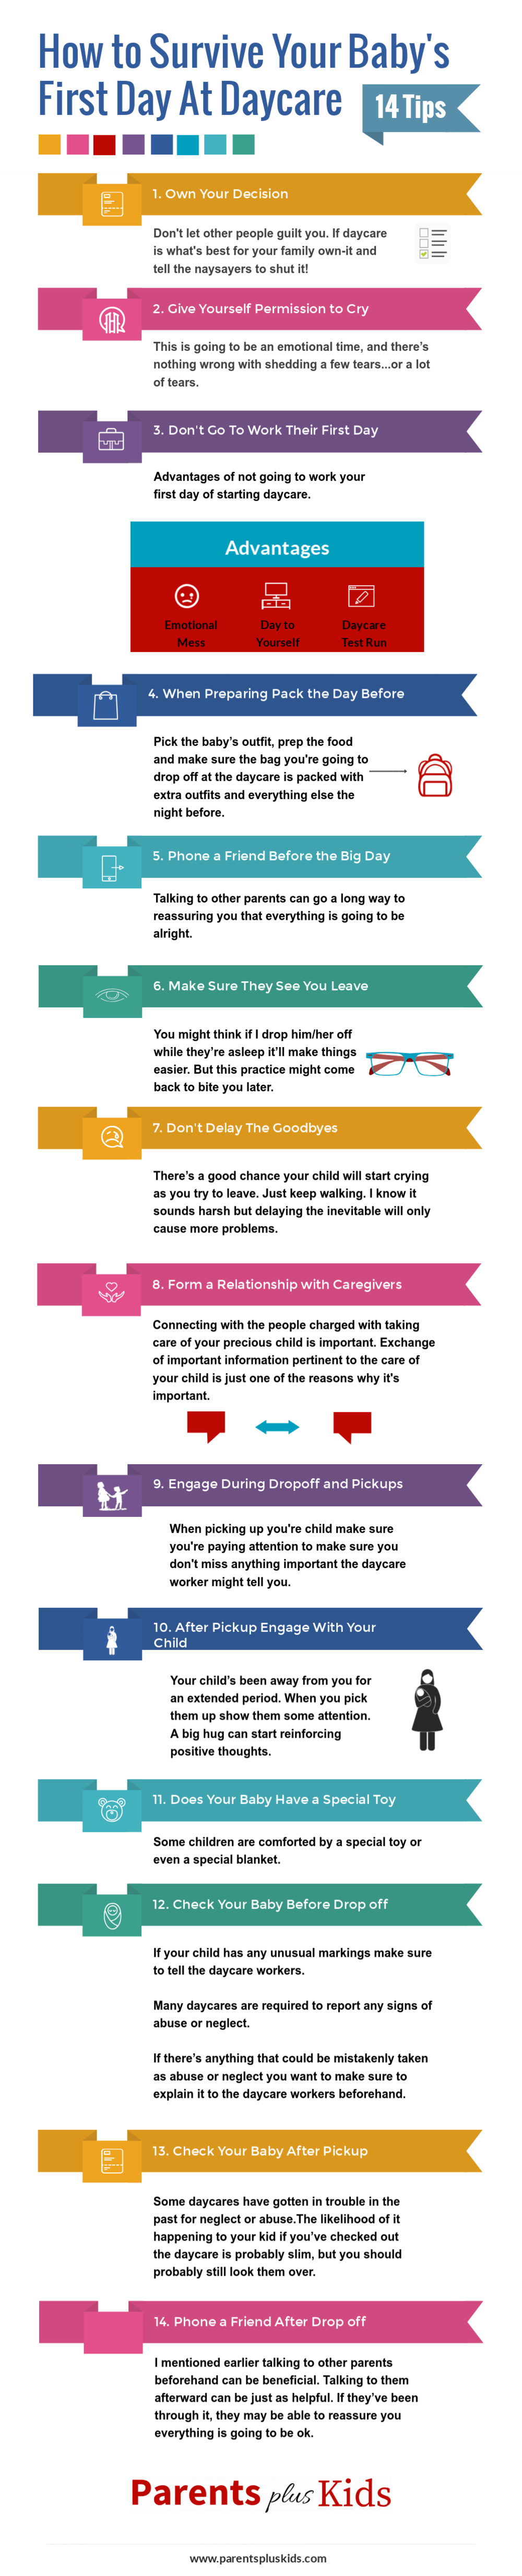 Leaving your baby at daycare for the first time can be difficult. Learn some tips and advice to survive leaving your baby at daycare. | first day of daycare for your infant or toddler |  #newmom #newdad #motherhood #newbaby #newtoddler #daycare #infographic